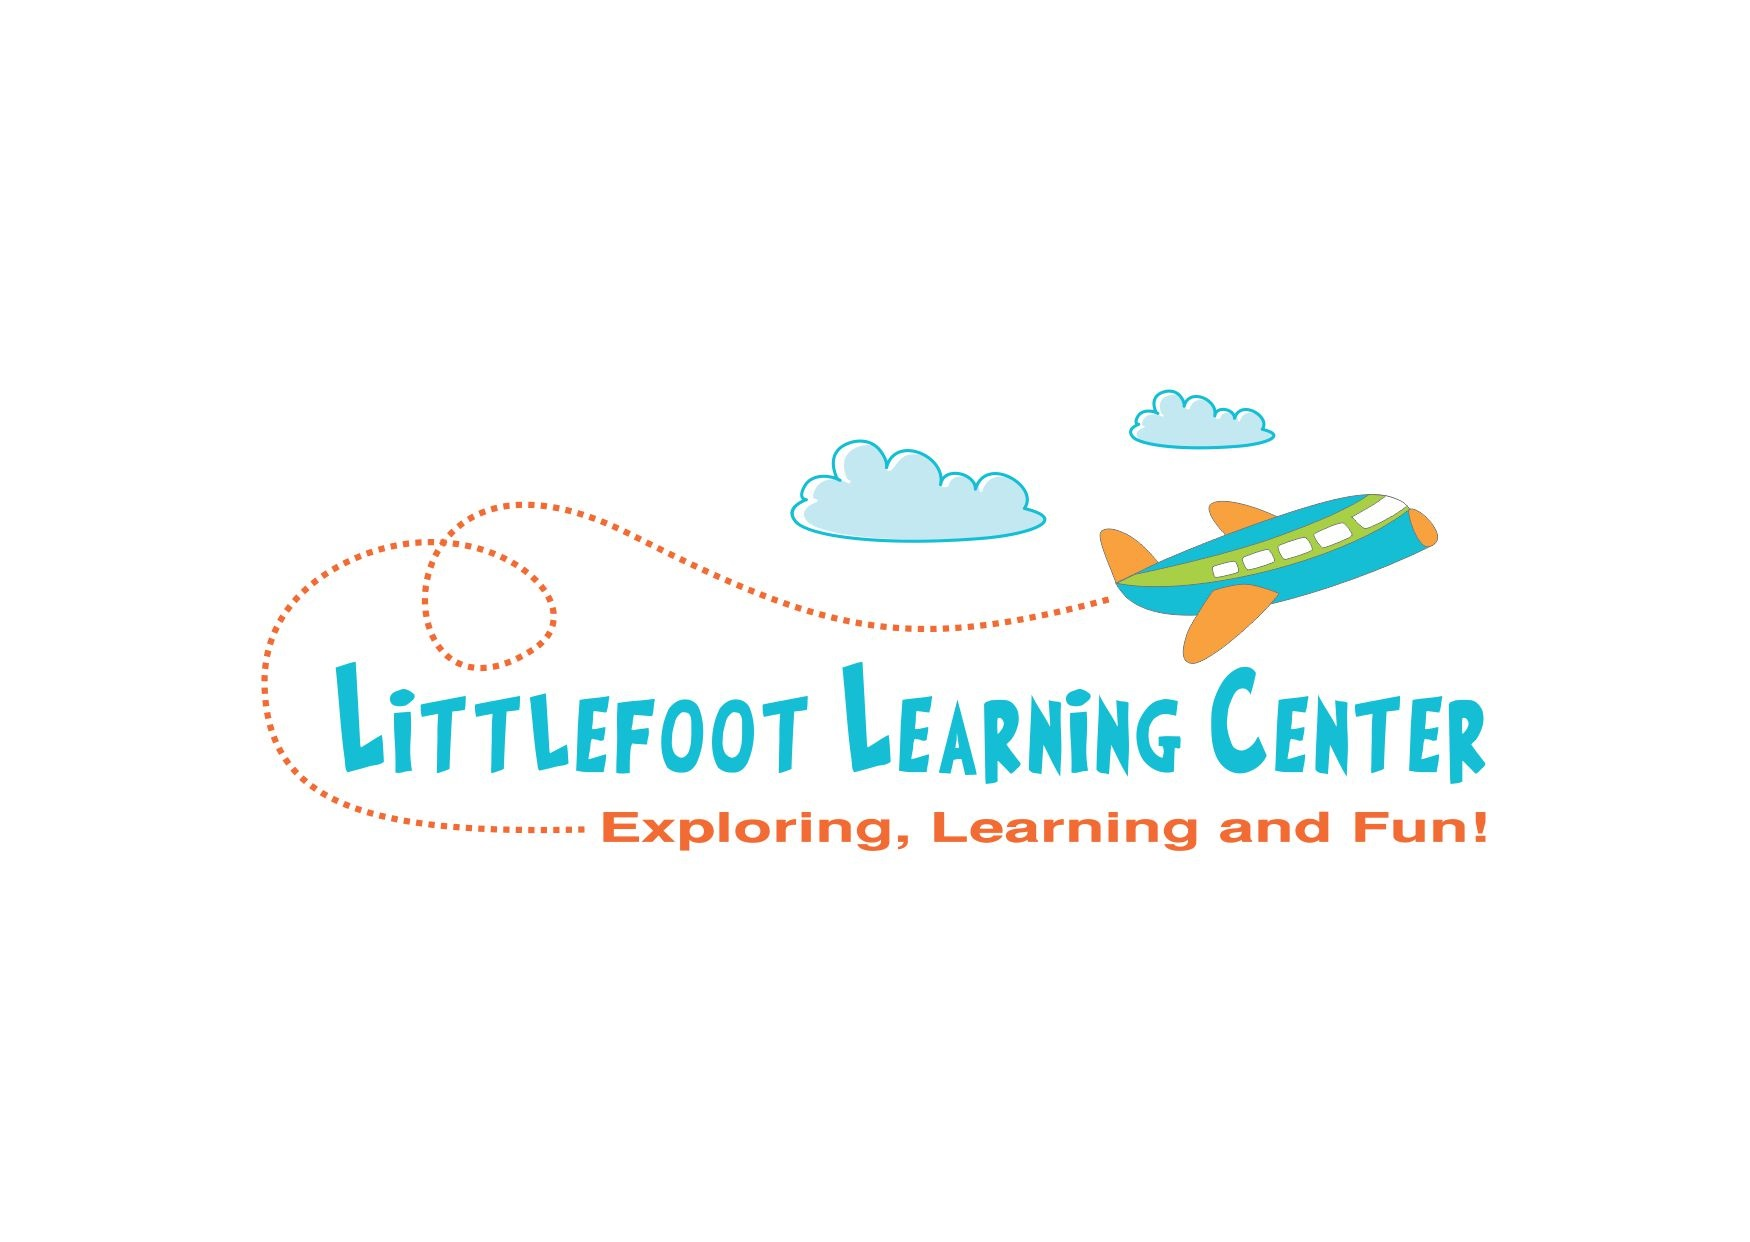 LITTLEFOOT LEARNING CENTER, INC